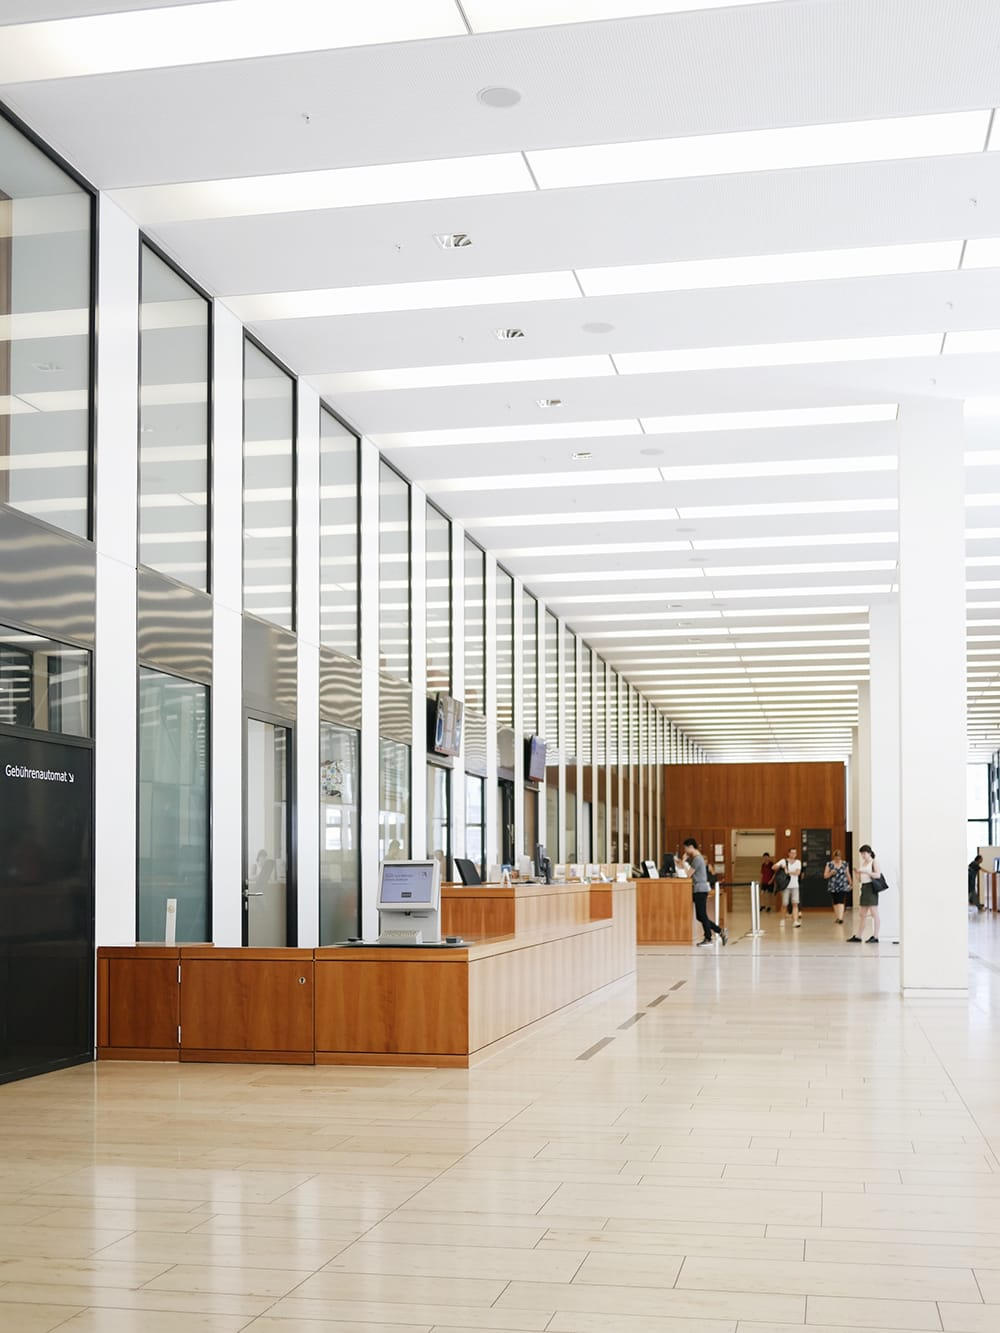 A spacious hall of library with some people in the distance. Berlin